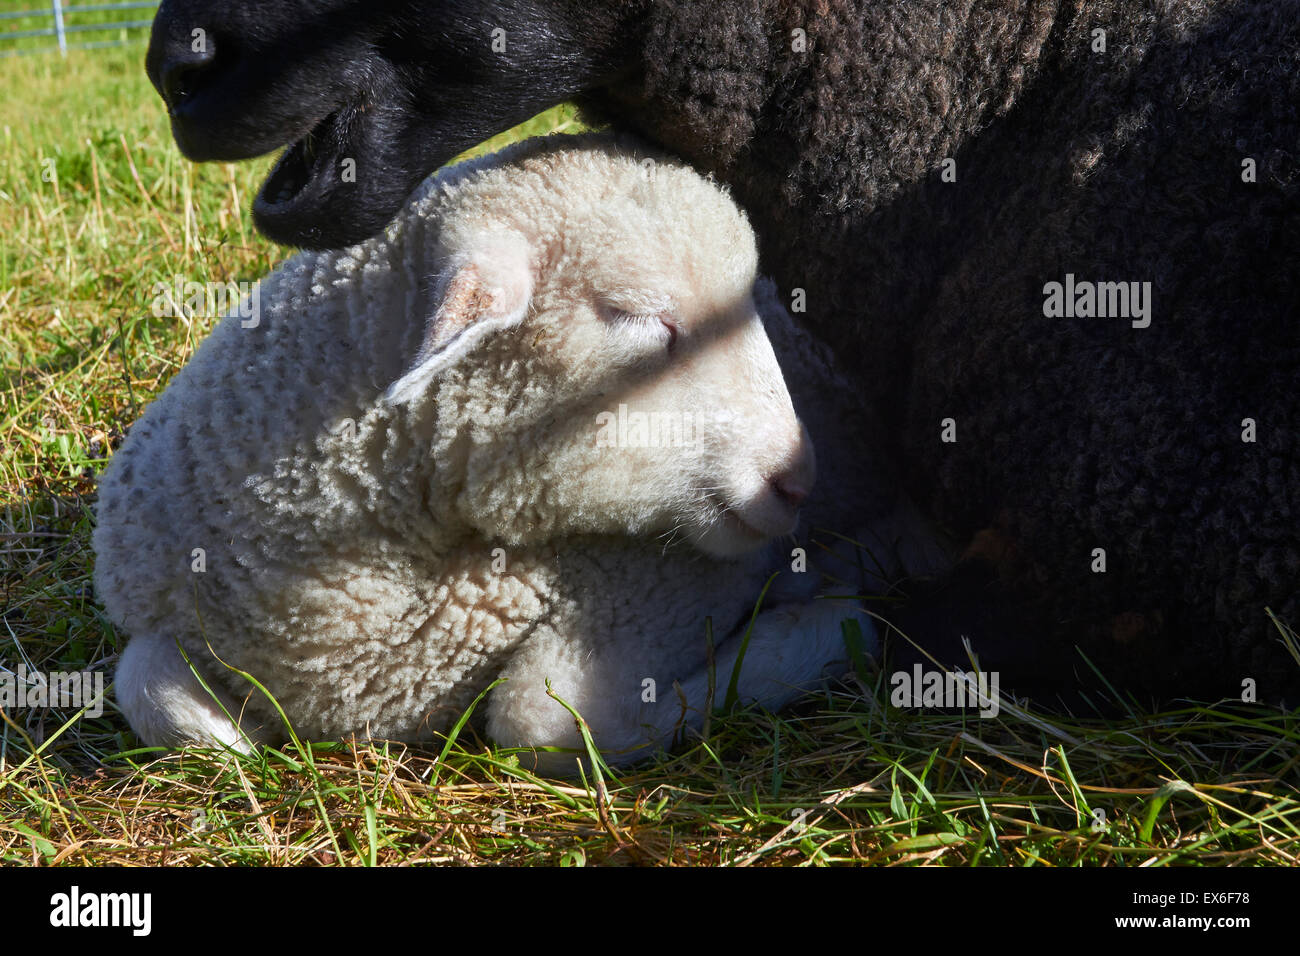 white lamb resting by its ewe - Stock Image